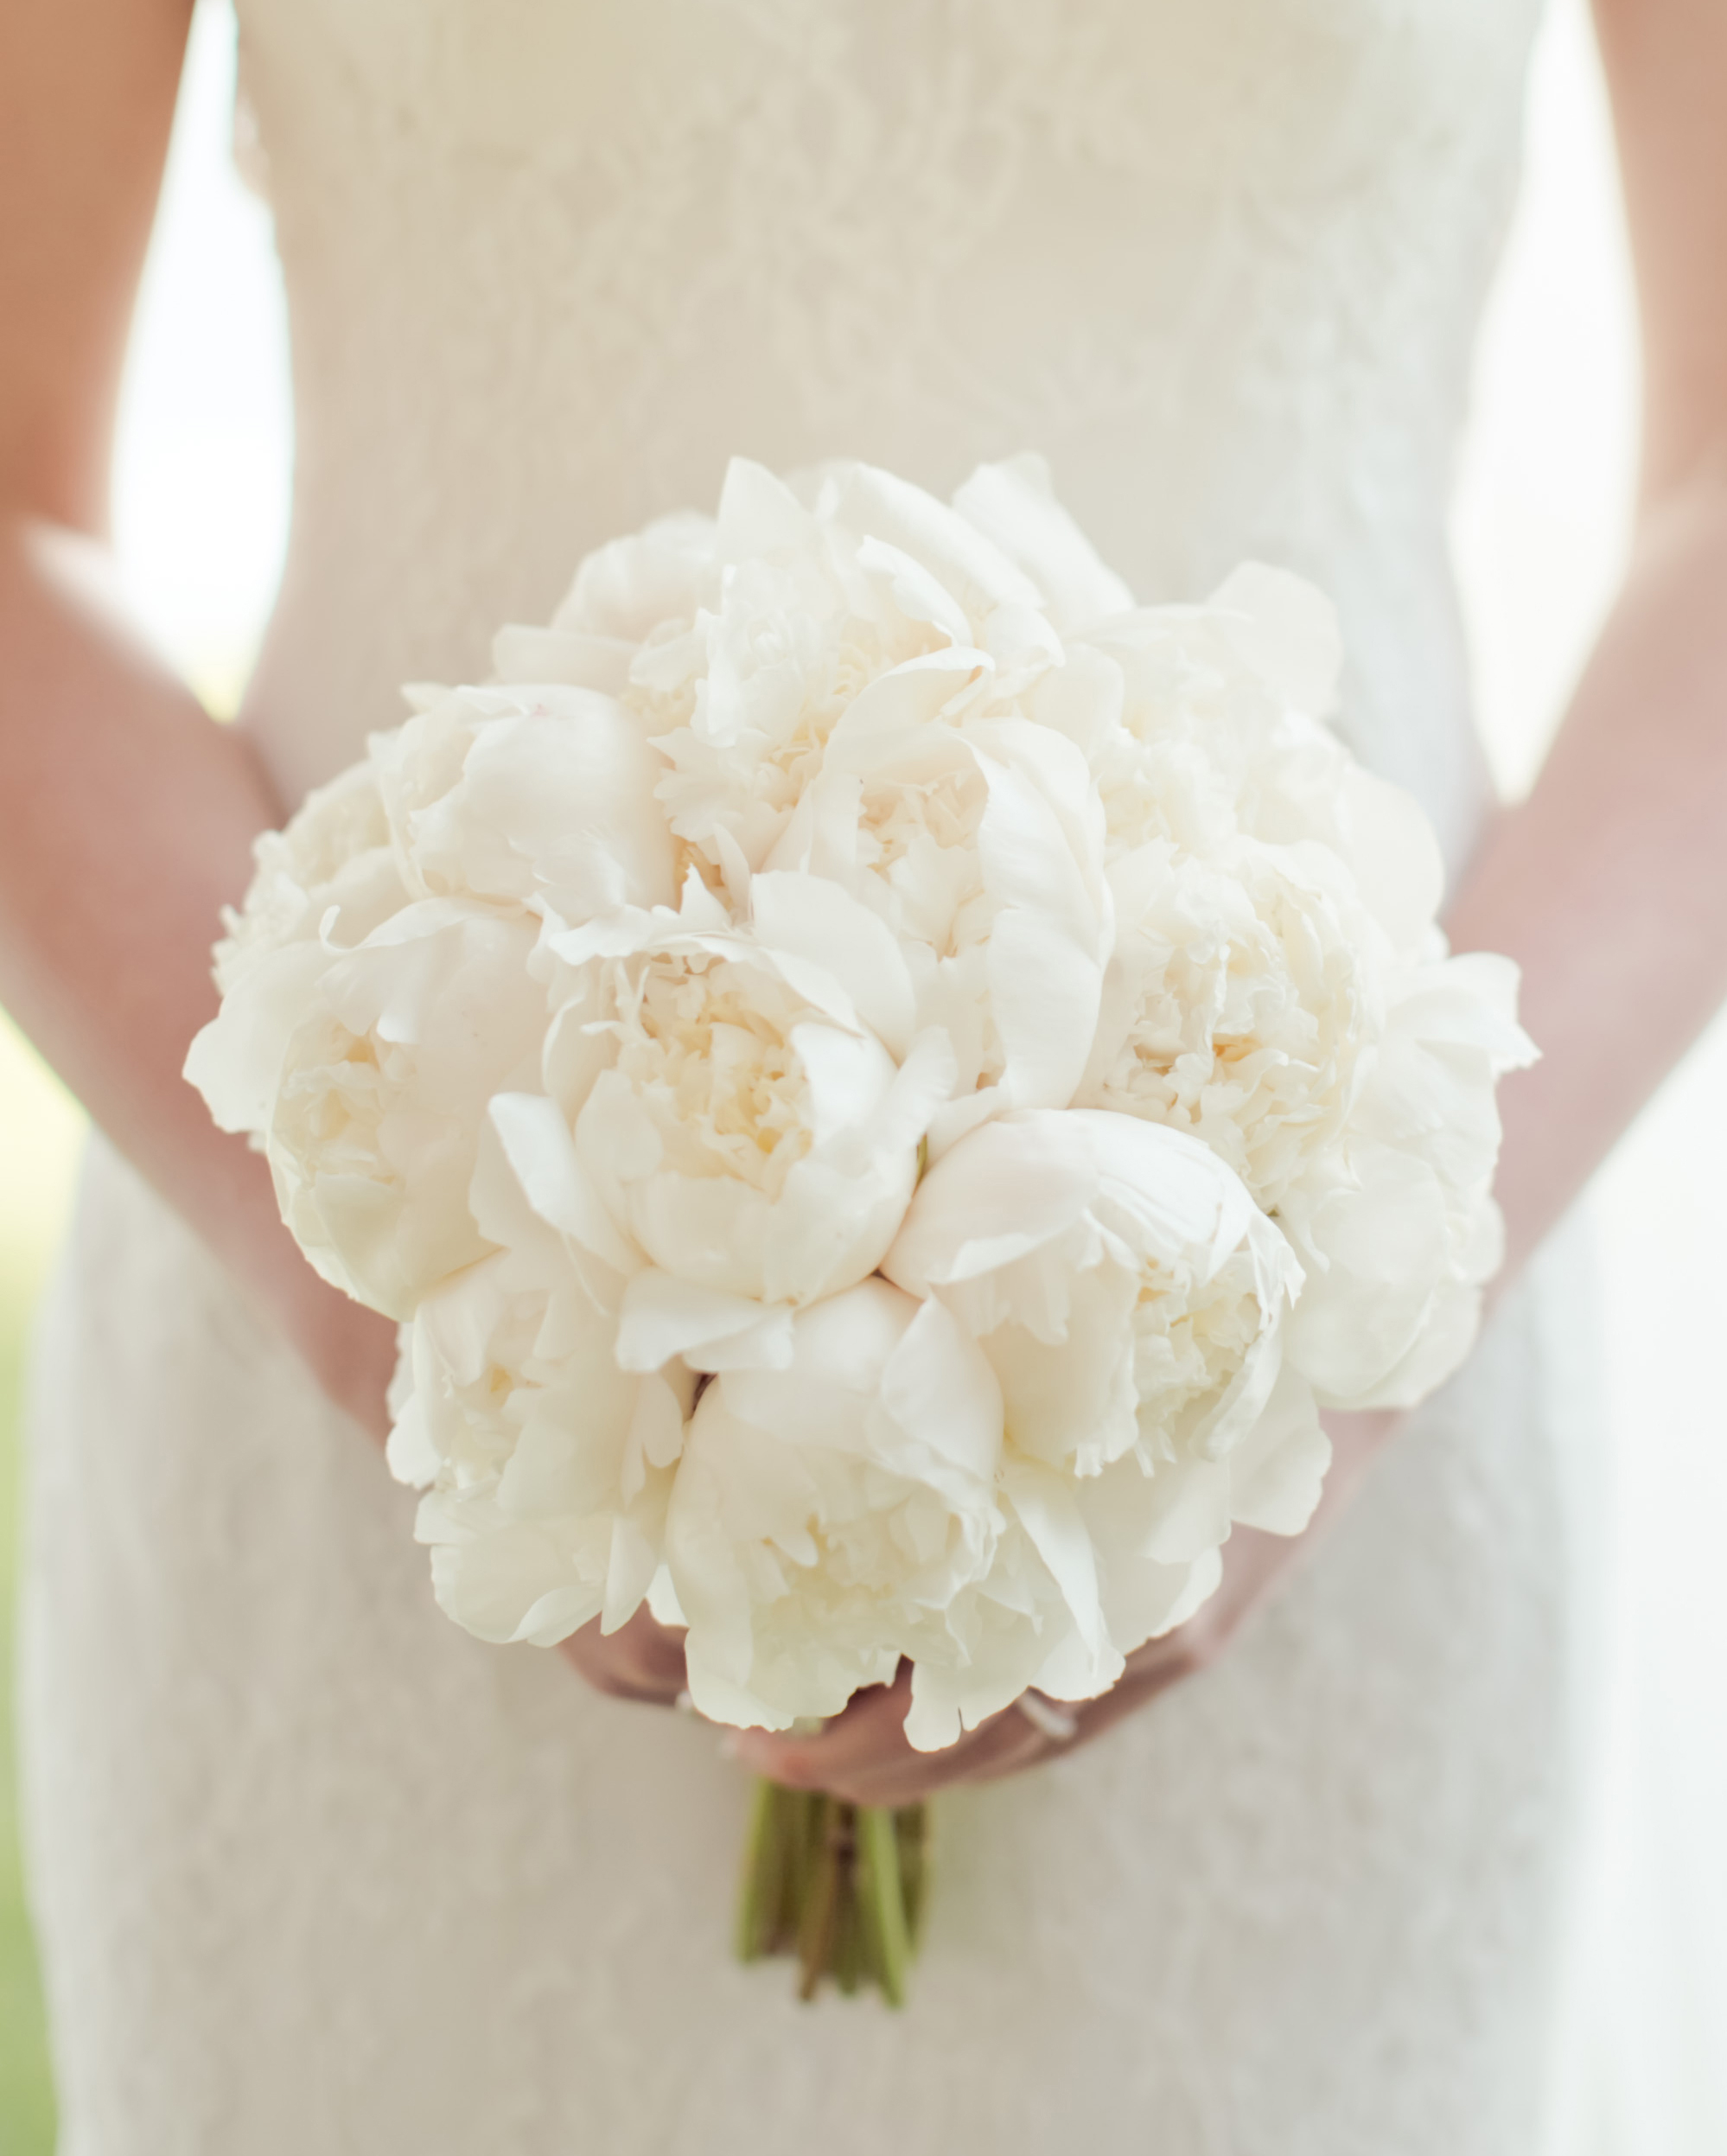 emma-michelle-wedding-bouquet-0807-s112079-0715.jpg